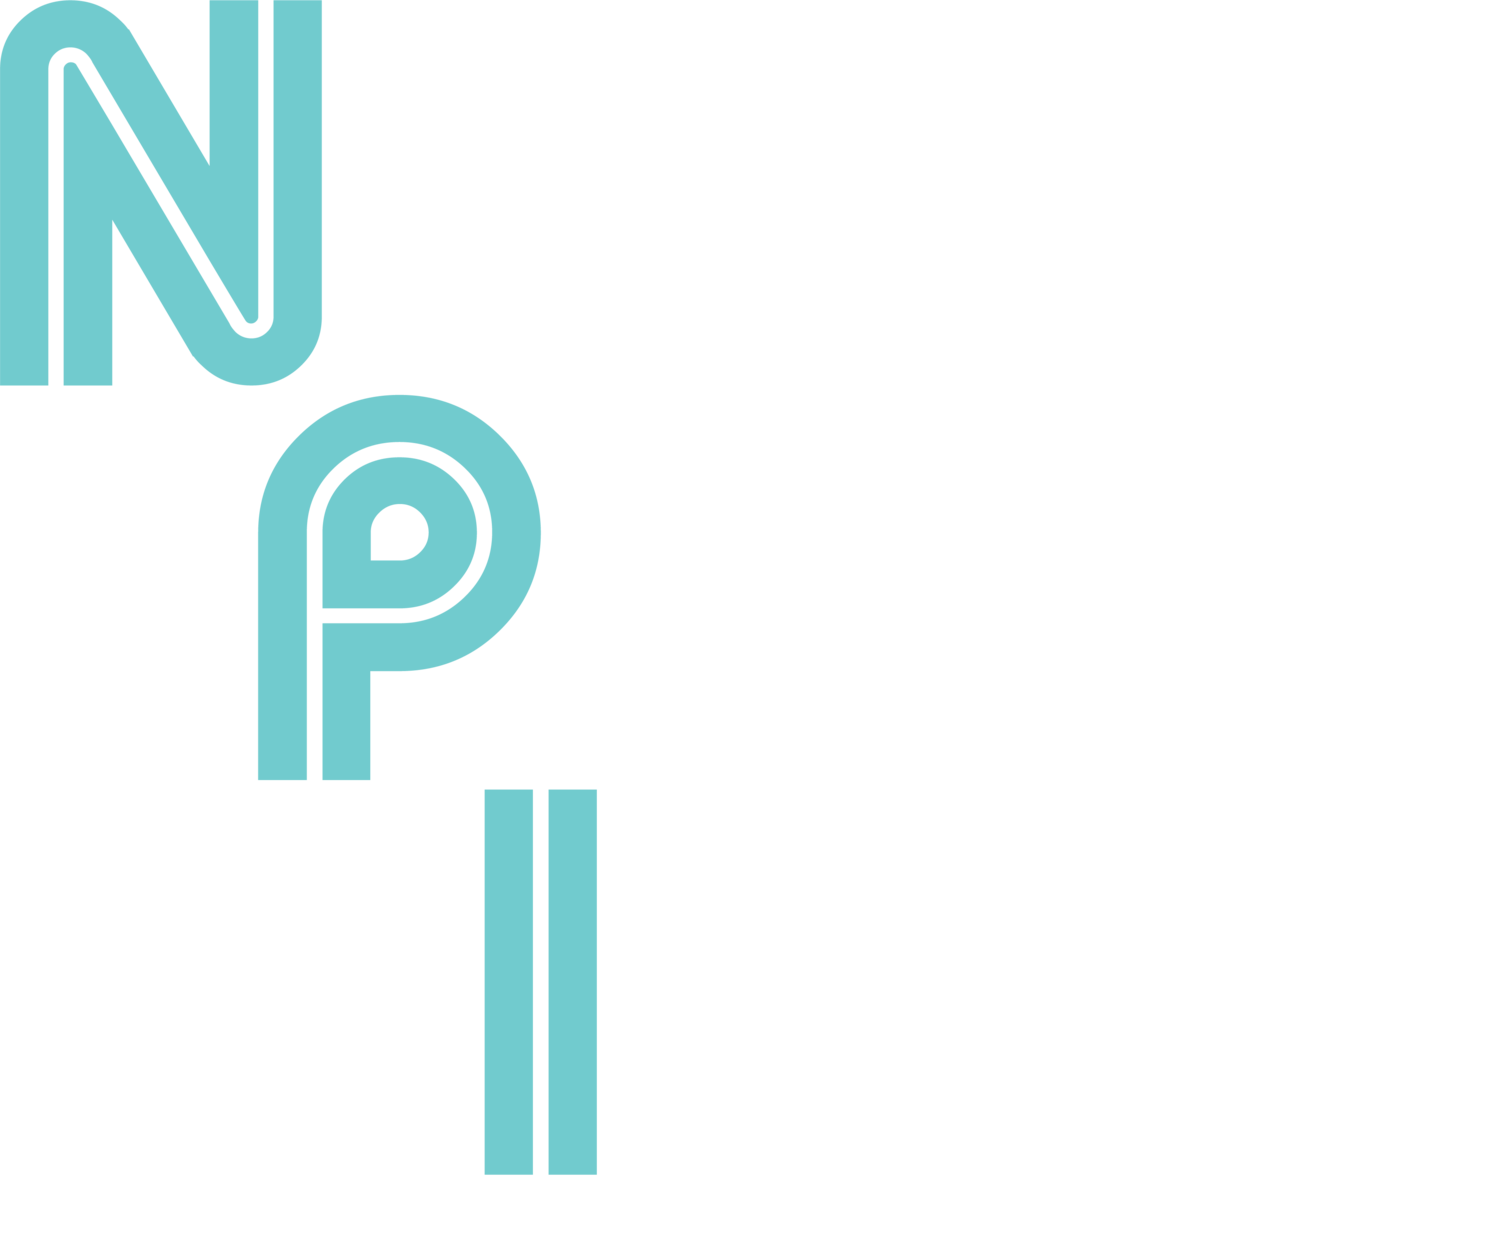 Nashville Paintball Inc.